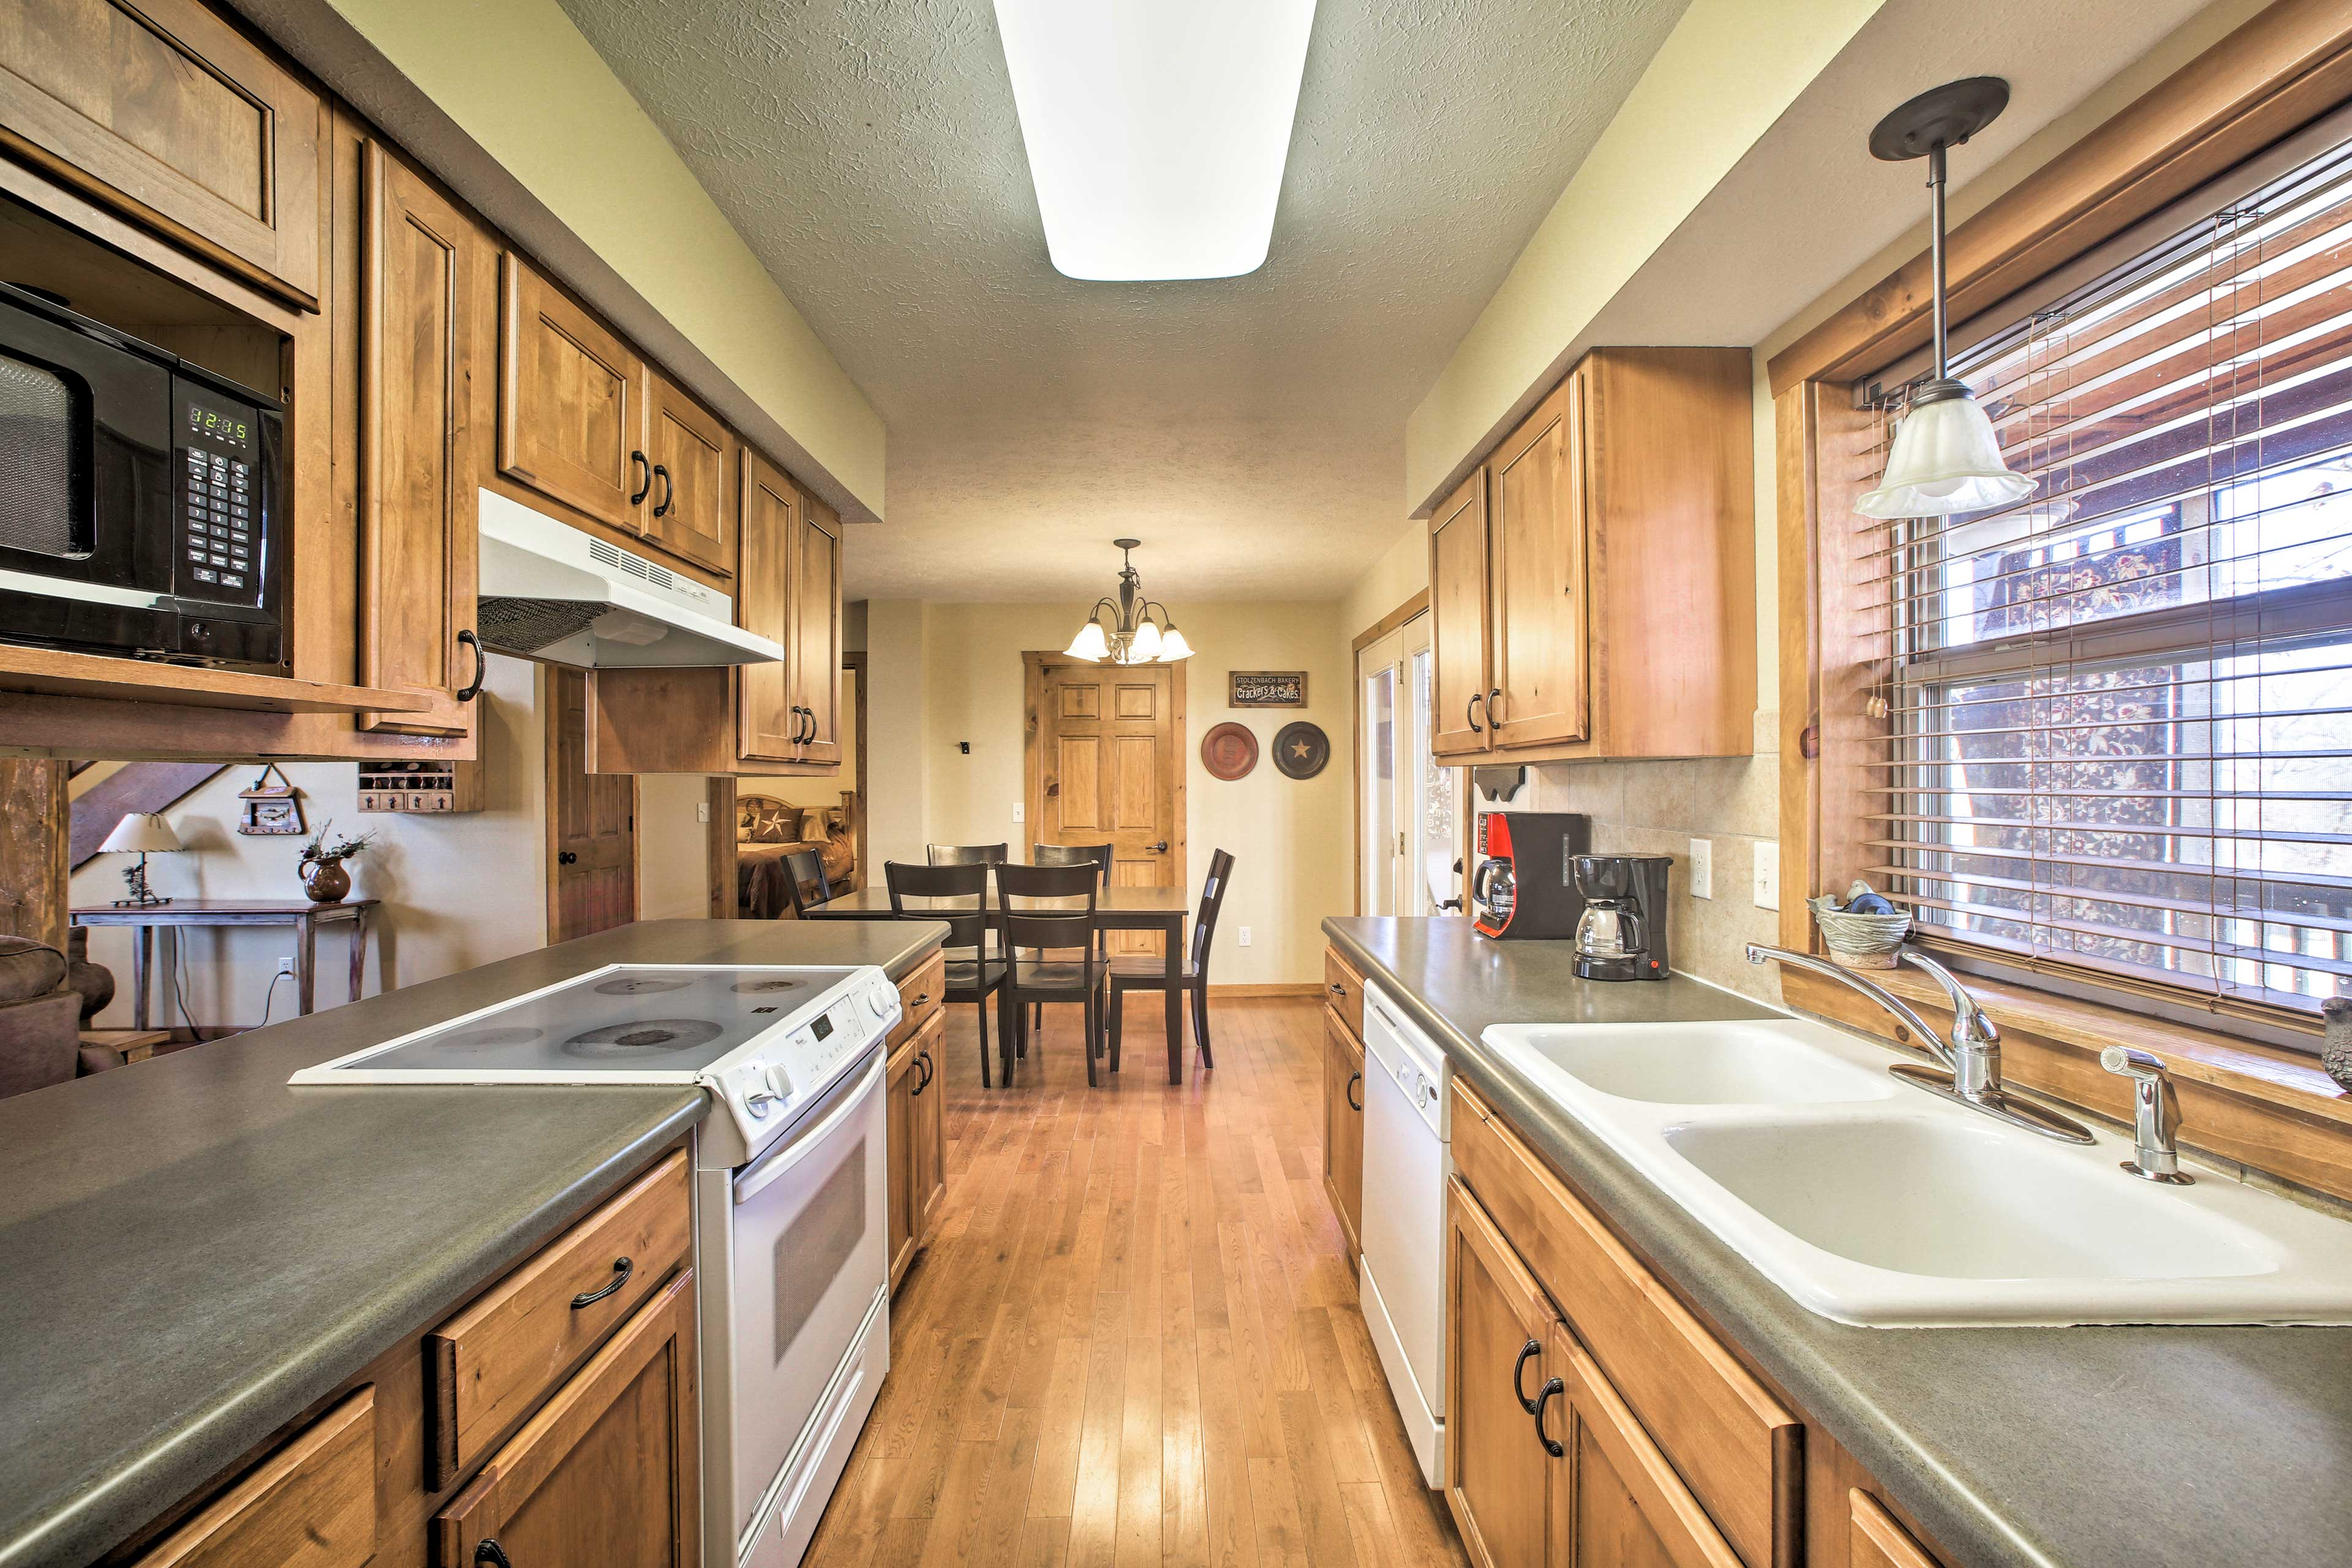 From breakfast to dinner, the kitchen allows you to whip it up with ease!